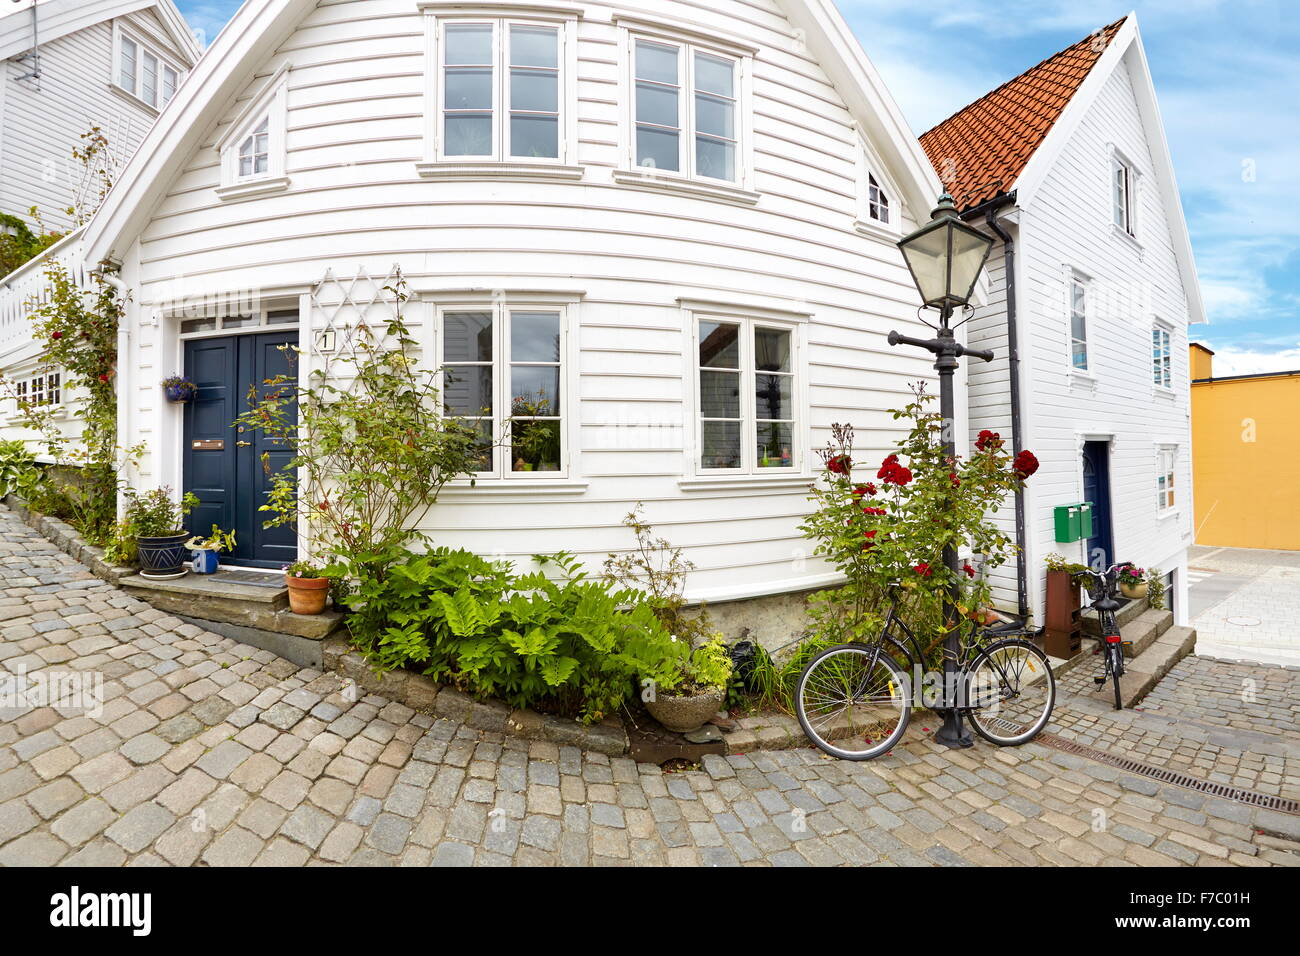 Traditional wooden houses in stavanger norway stock photo for Norway wooden houses